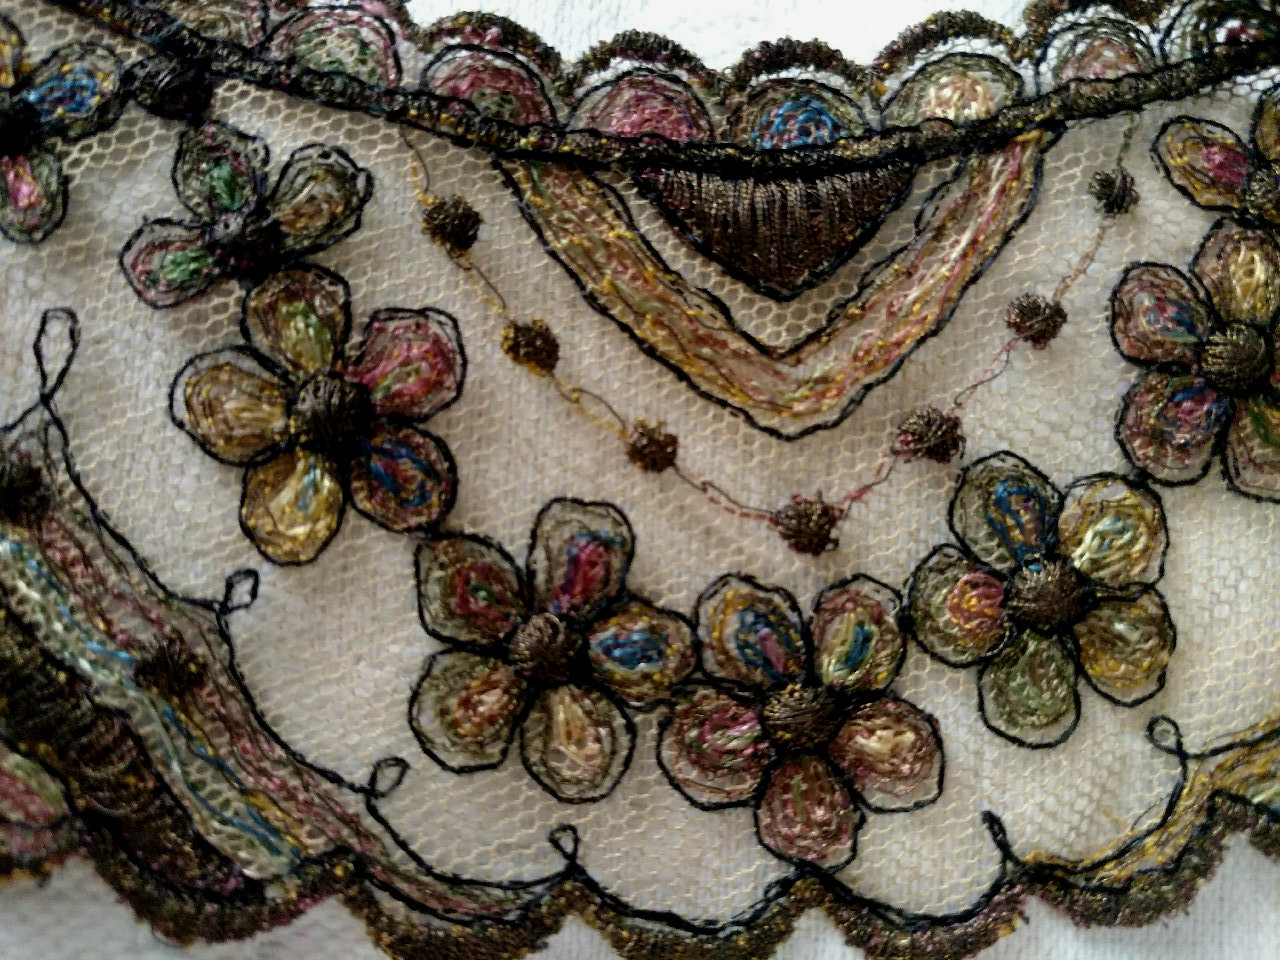 Antique Net Lace Embroidery Collar Color Metallic Thread 1920s